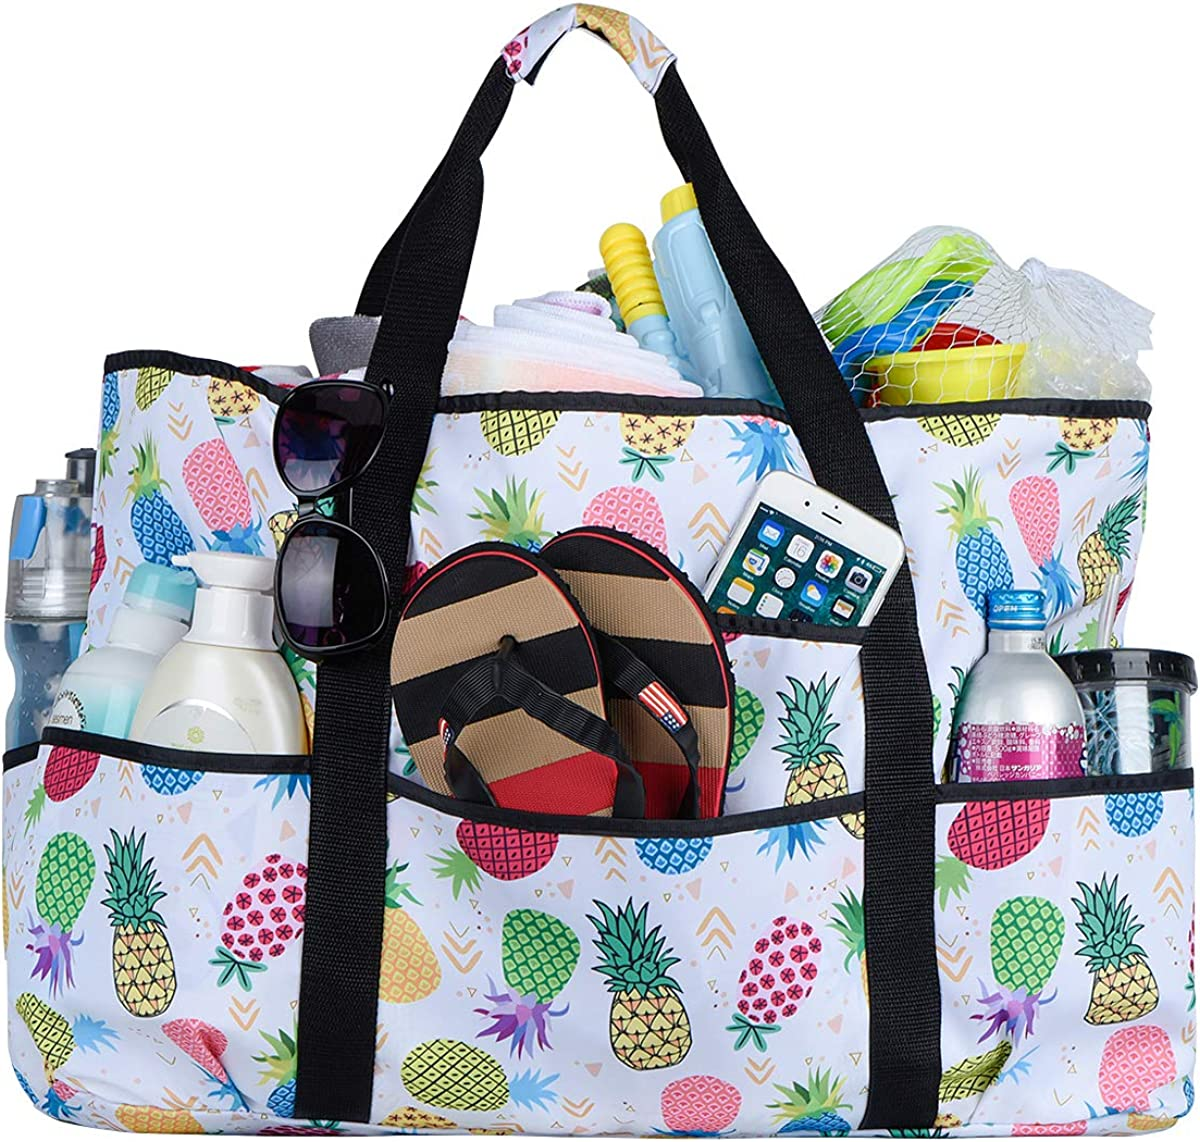 Flamingo Beach Theme In Aqua And Pink Travel Duffel Bag Casual Large Capacity Portable Luggage Bag Suitcase Storage Bag Luggage Packing Tote Bag Weekend Trip